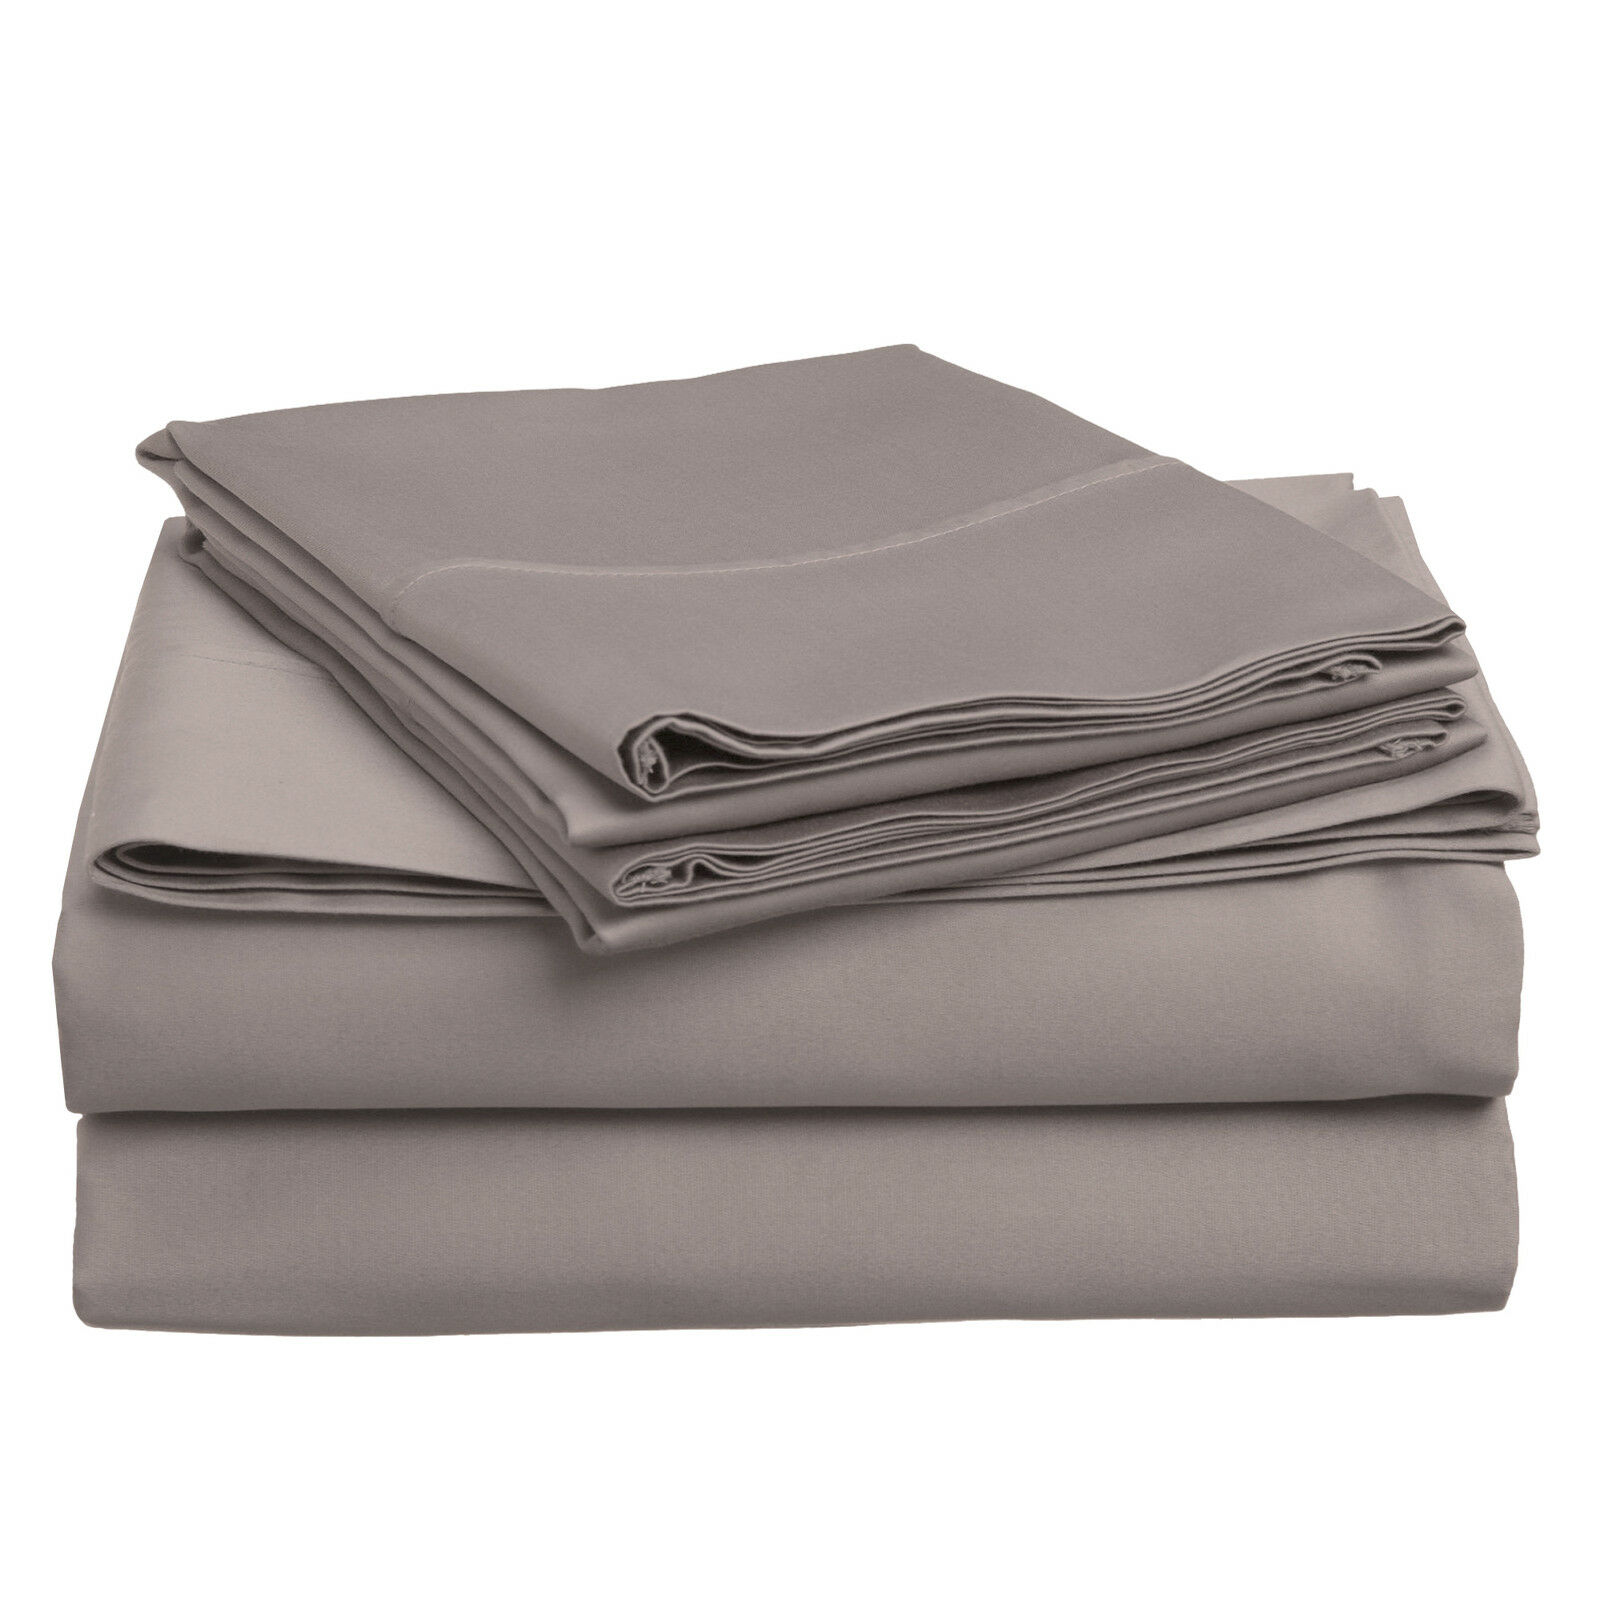 500 SHEET SET COTTON SOLID-grigio